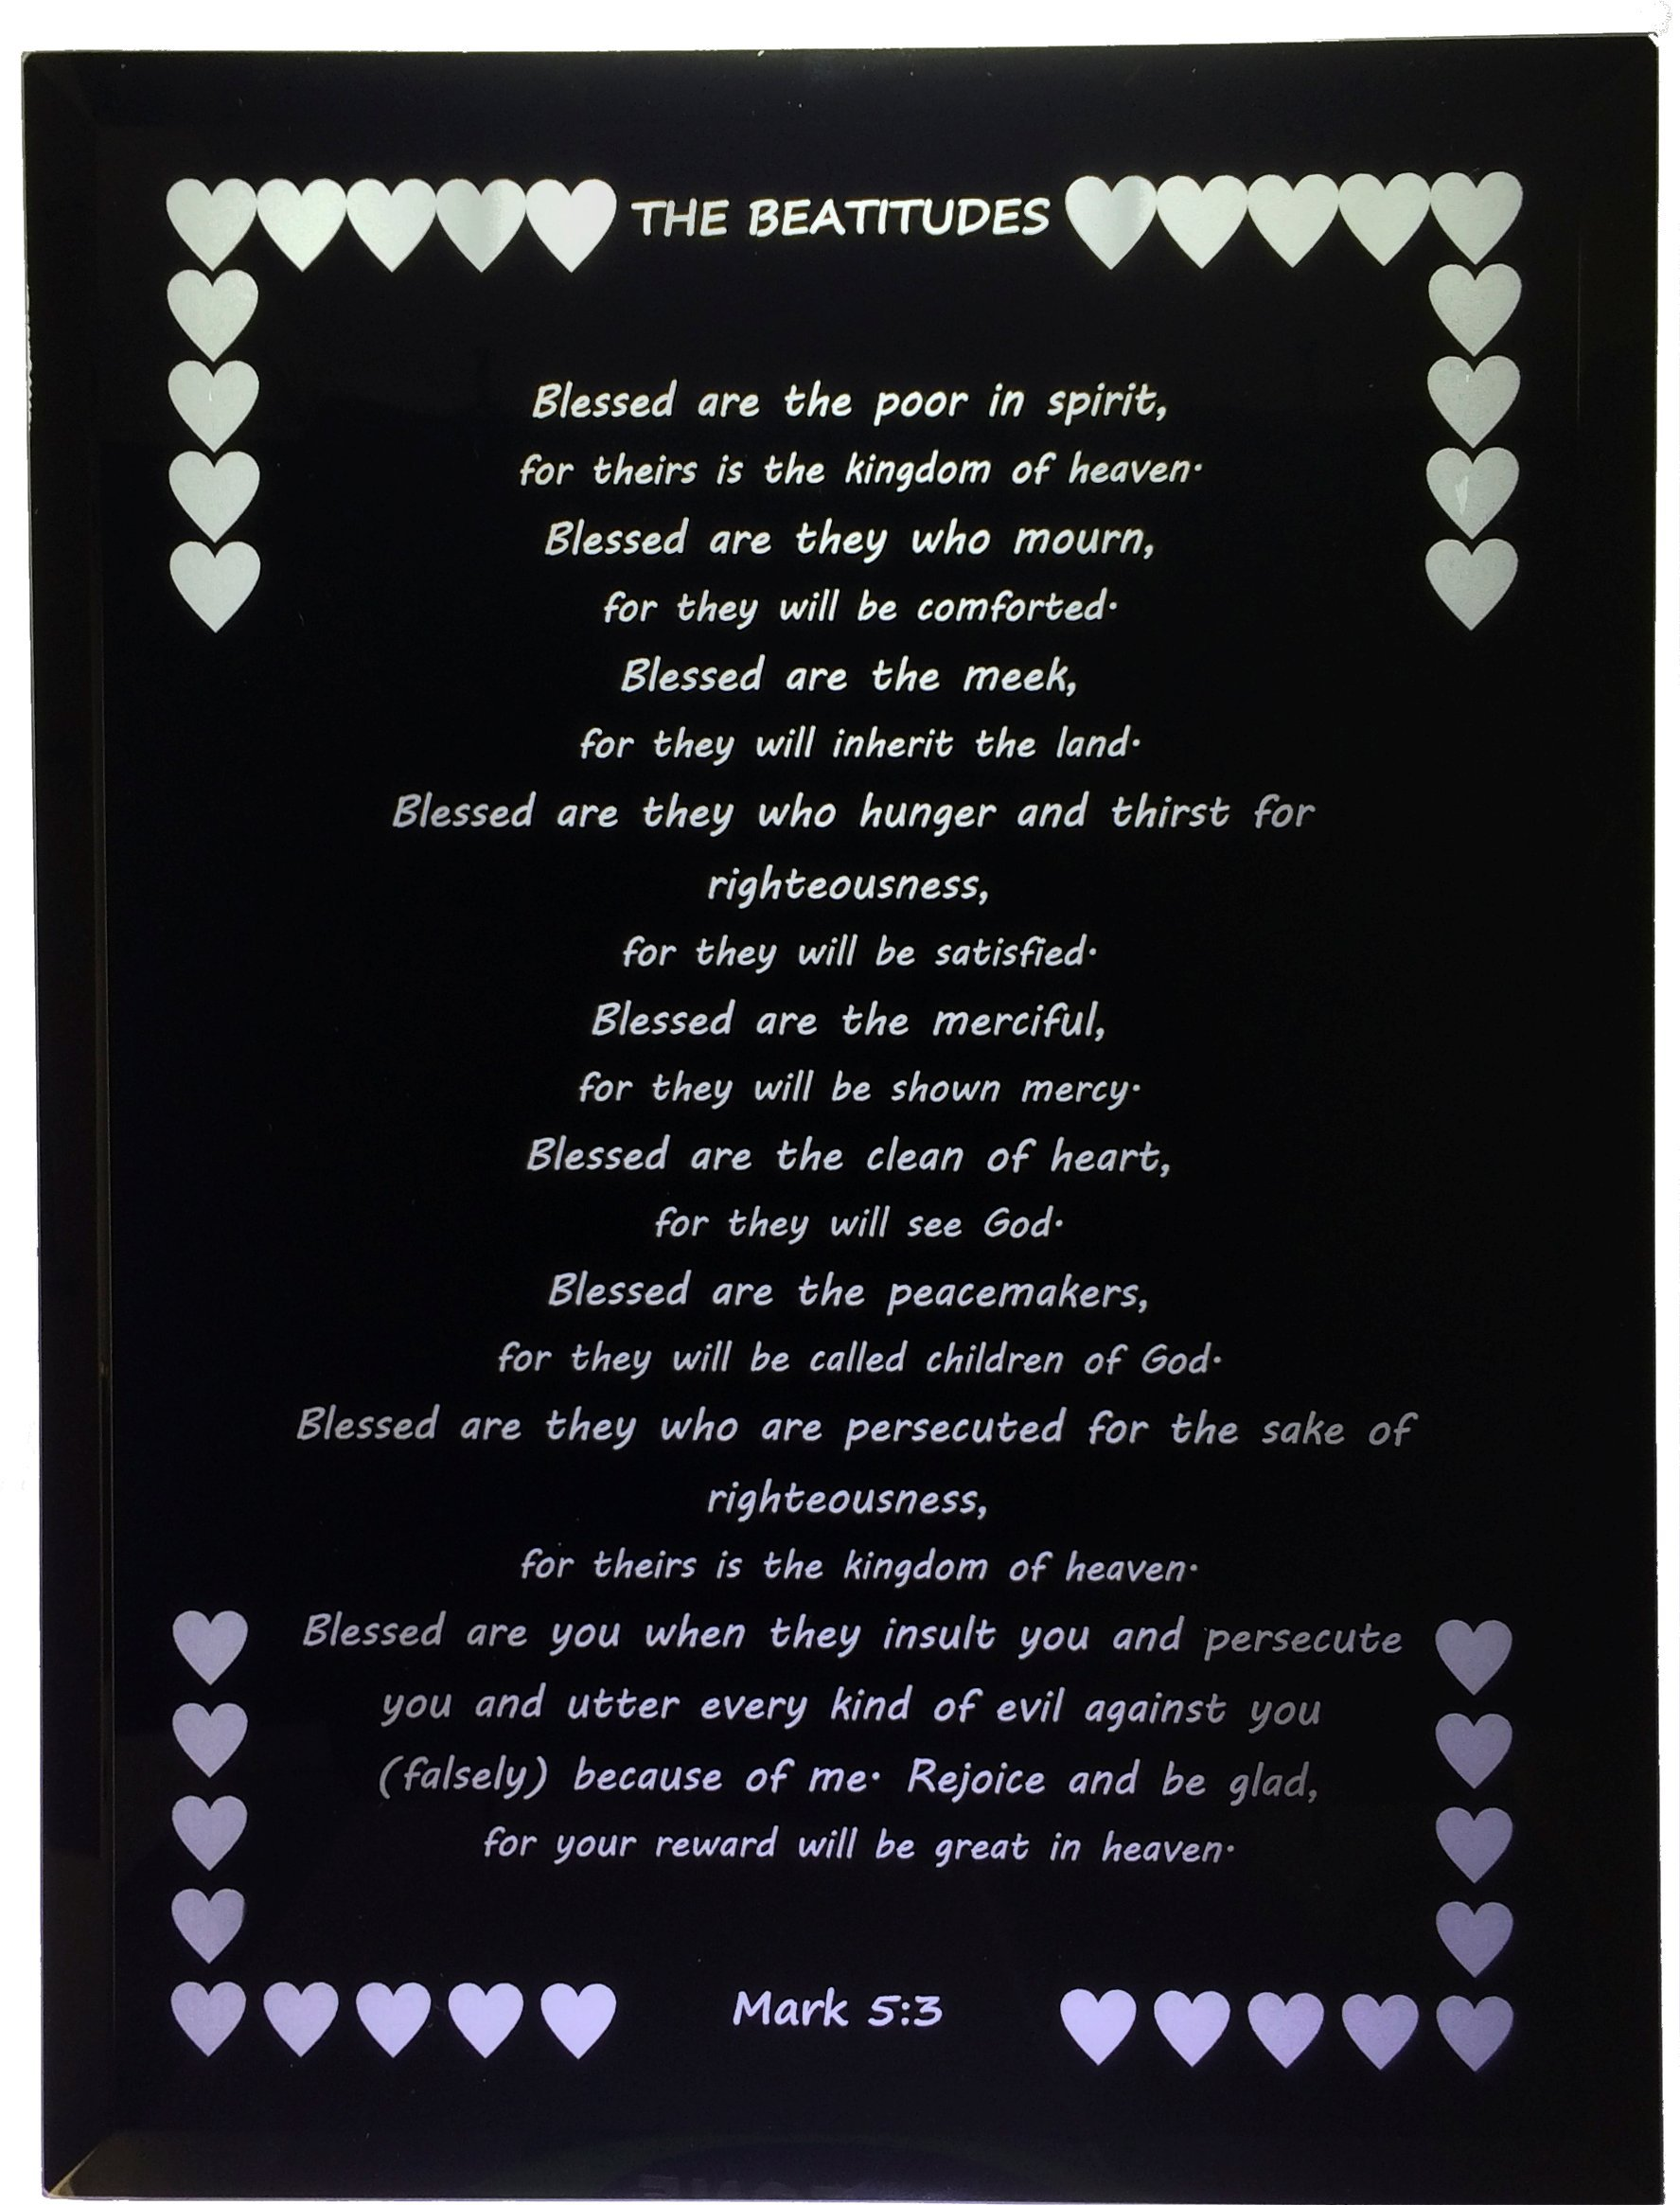 Beatitudes - Mark 5:3 Black Mirror Reverse Engraved in USA 9'' By 12''